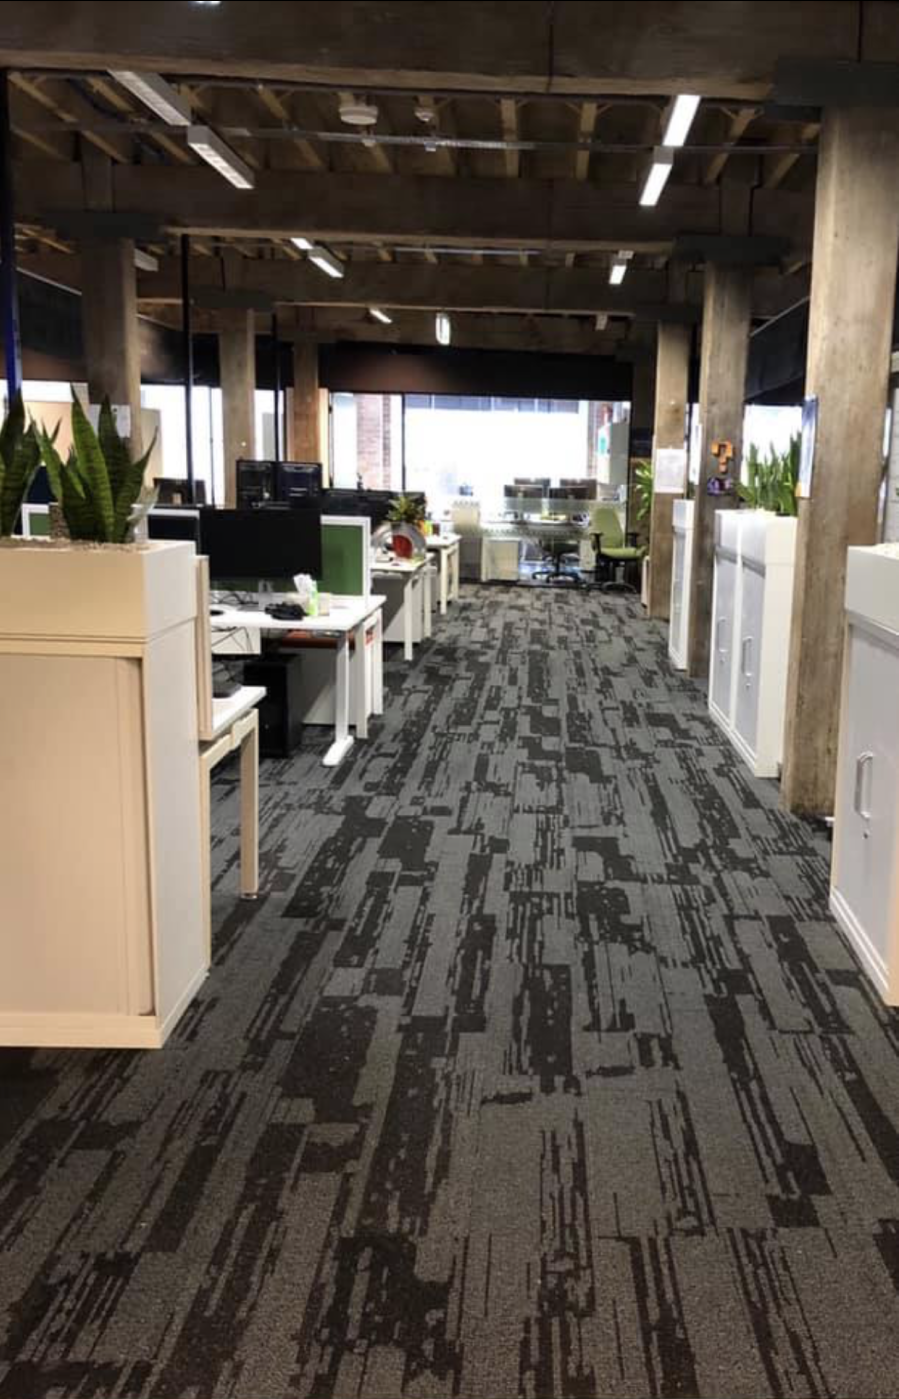 Urban Jet carpet in an office space, Perth Western Australia, Walkway view alternative